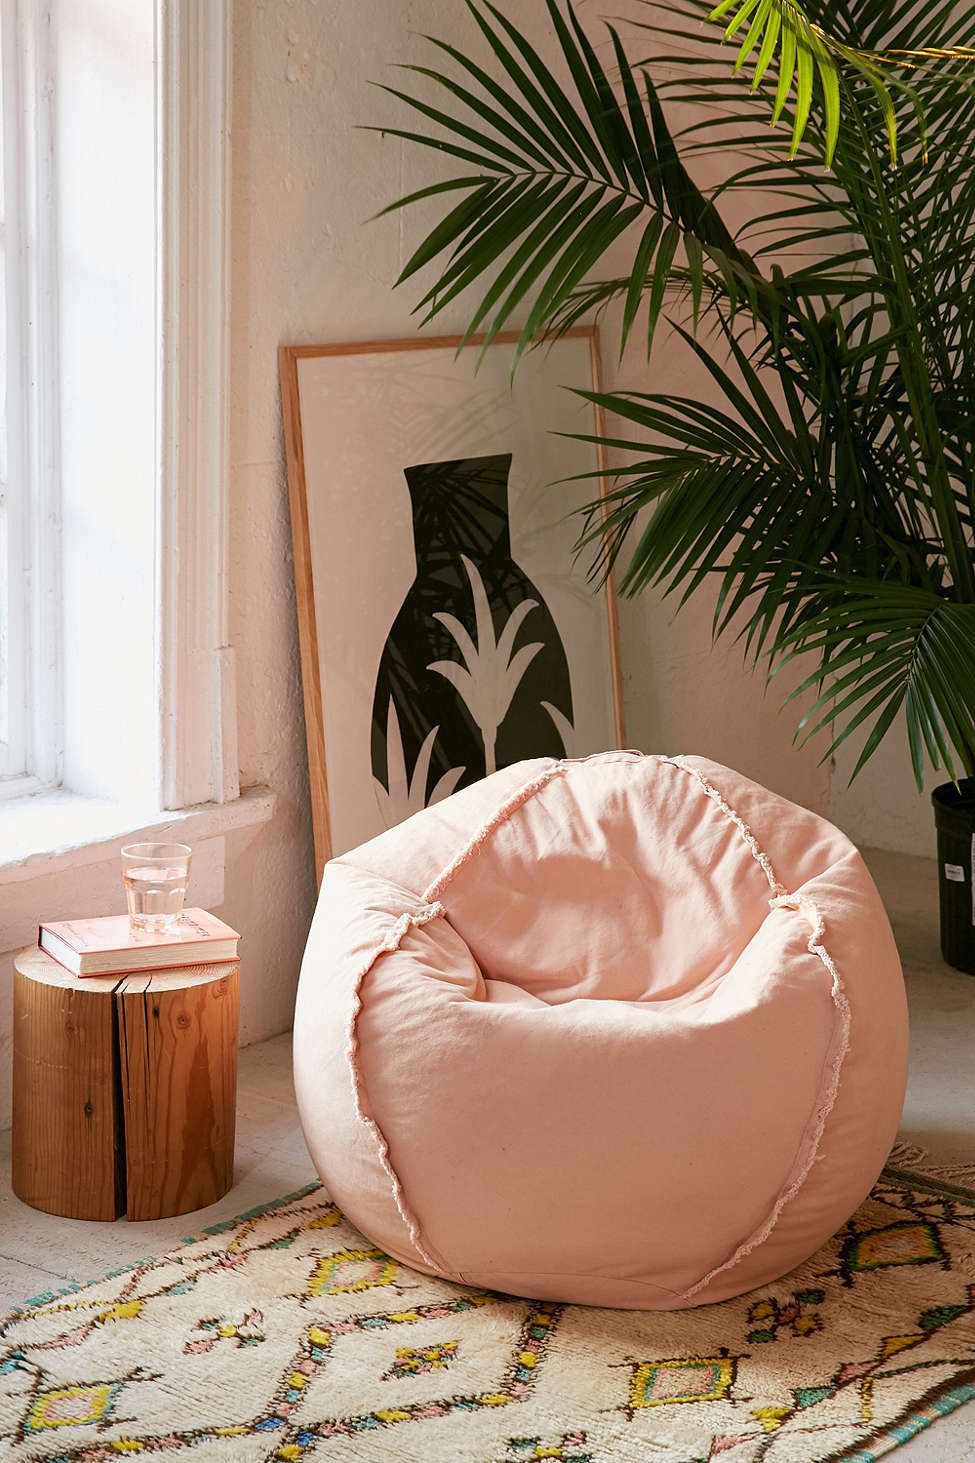 Sitzsack Trends Exposed Seam Bean Bag Chair In 2019 Sitzsack Trends